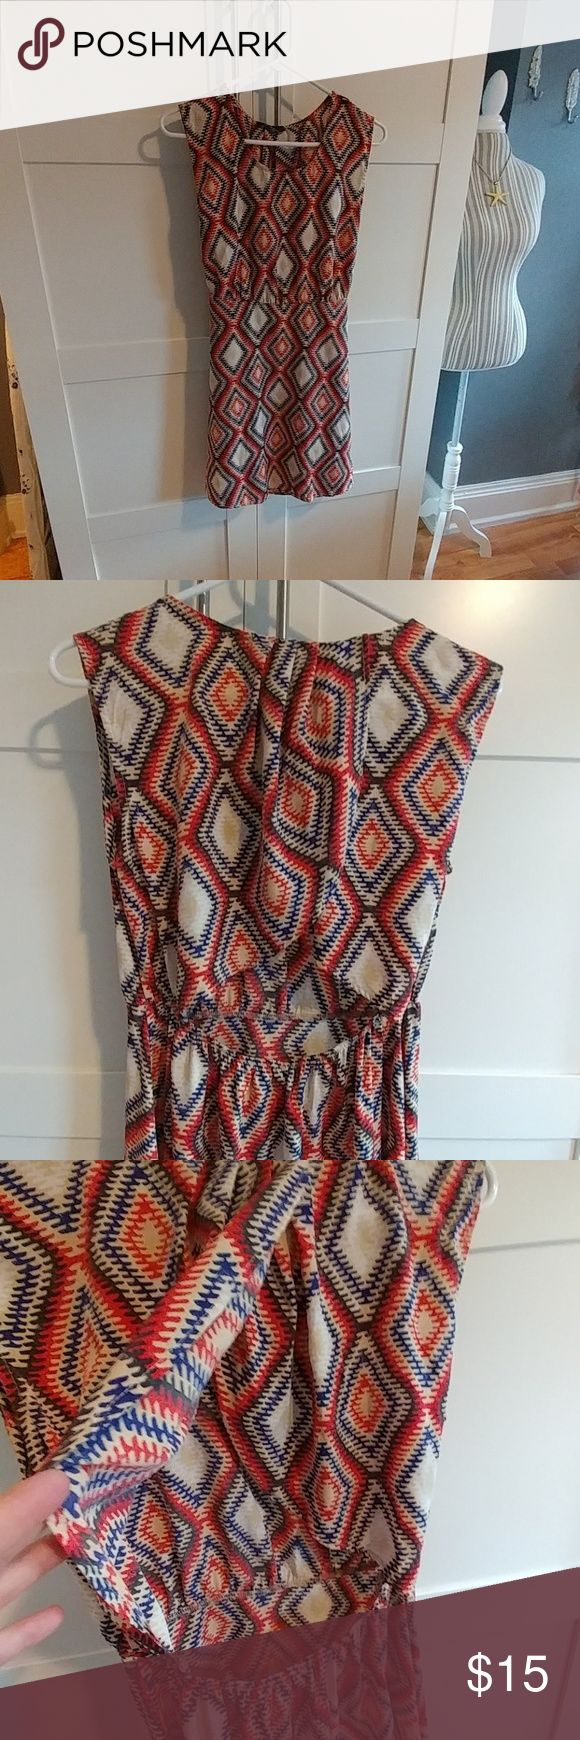 Beautiful open back dress This dress is perfect for vacation! Light weight and transitional! No wrinkle too! Back is pleated at nape of neck and falls open to reveal the small of your back. Elstic to hold it in place at your waist. Size small. Dresses Mini